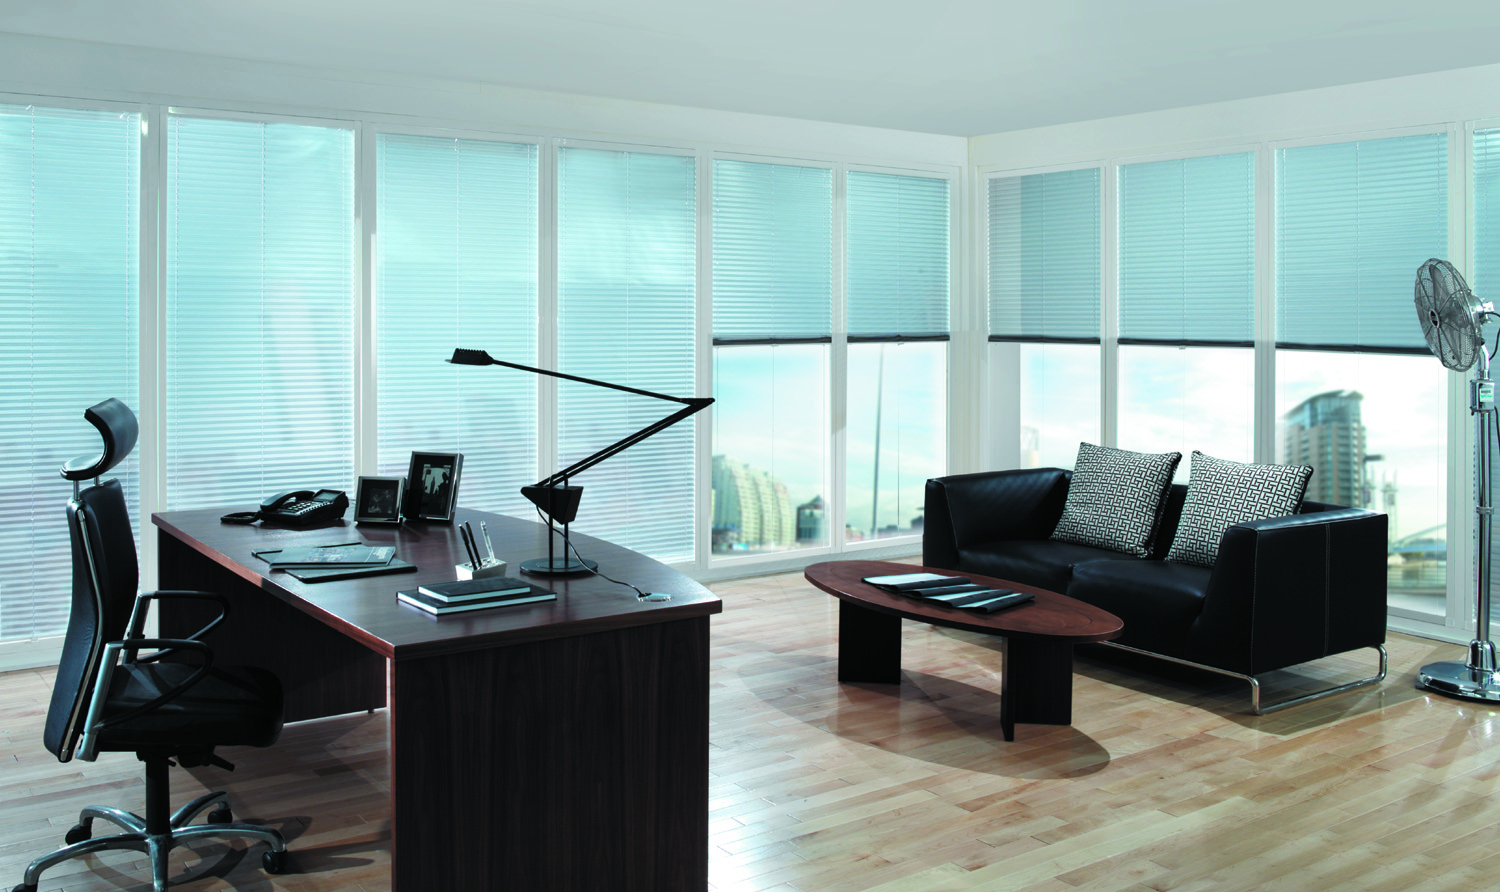 gallery — office roller blinds london